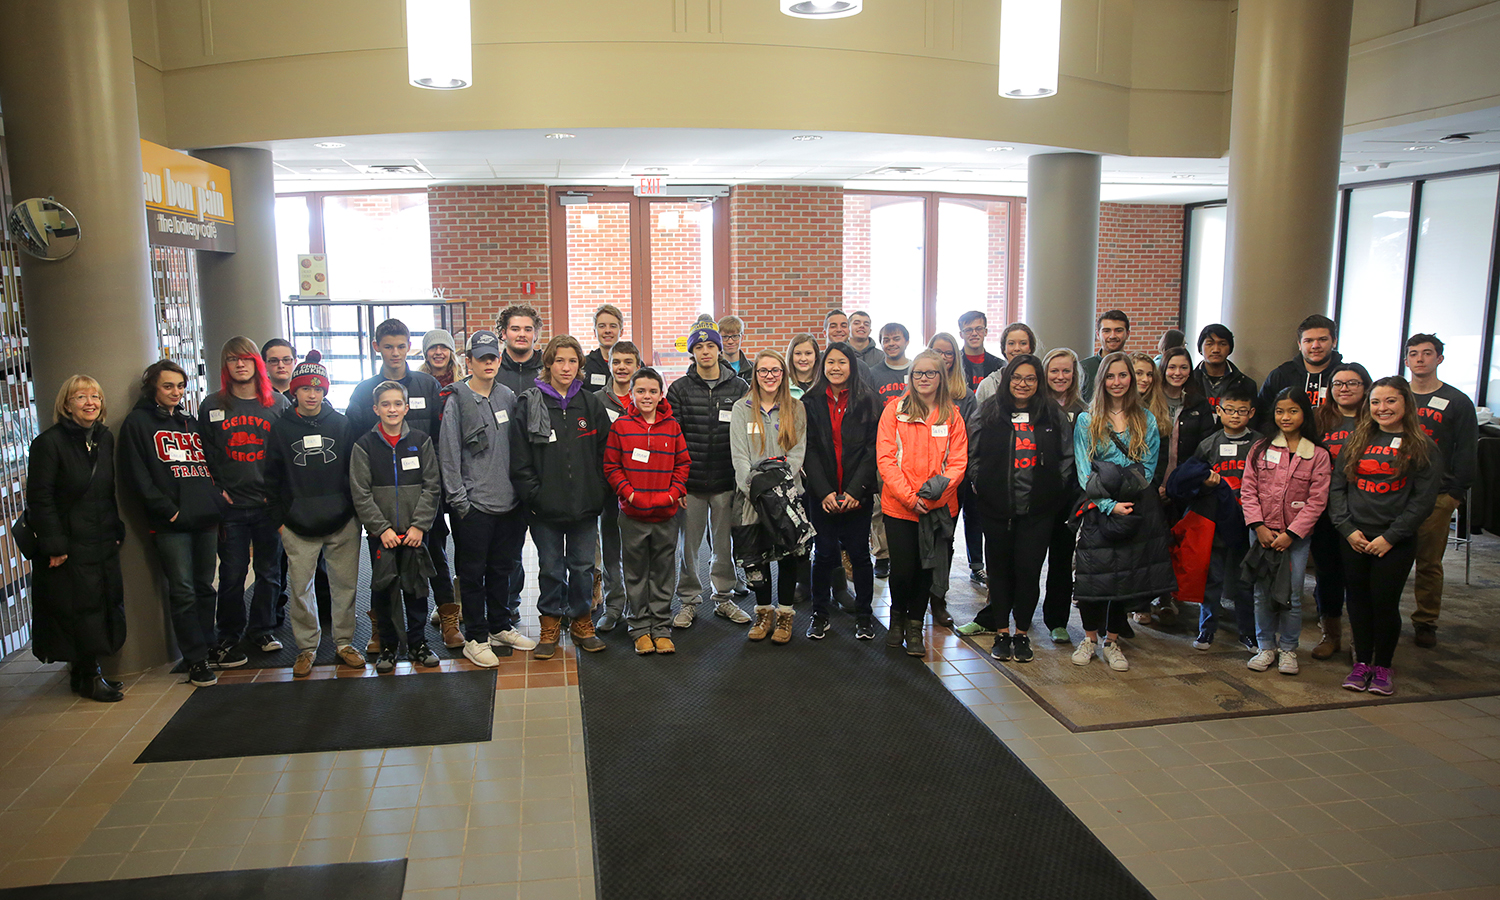 Members of Geneva Heroes gather for a group photo in the atrium of Warren Hunting Smith Library.